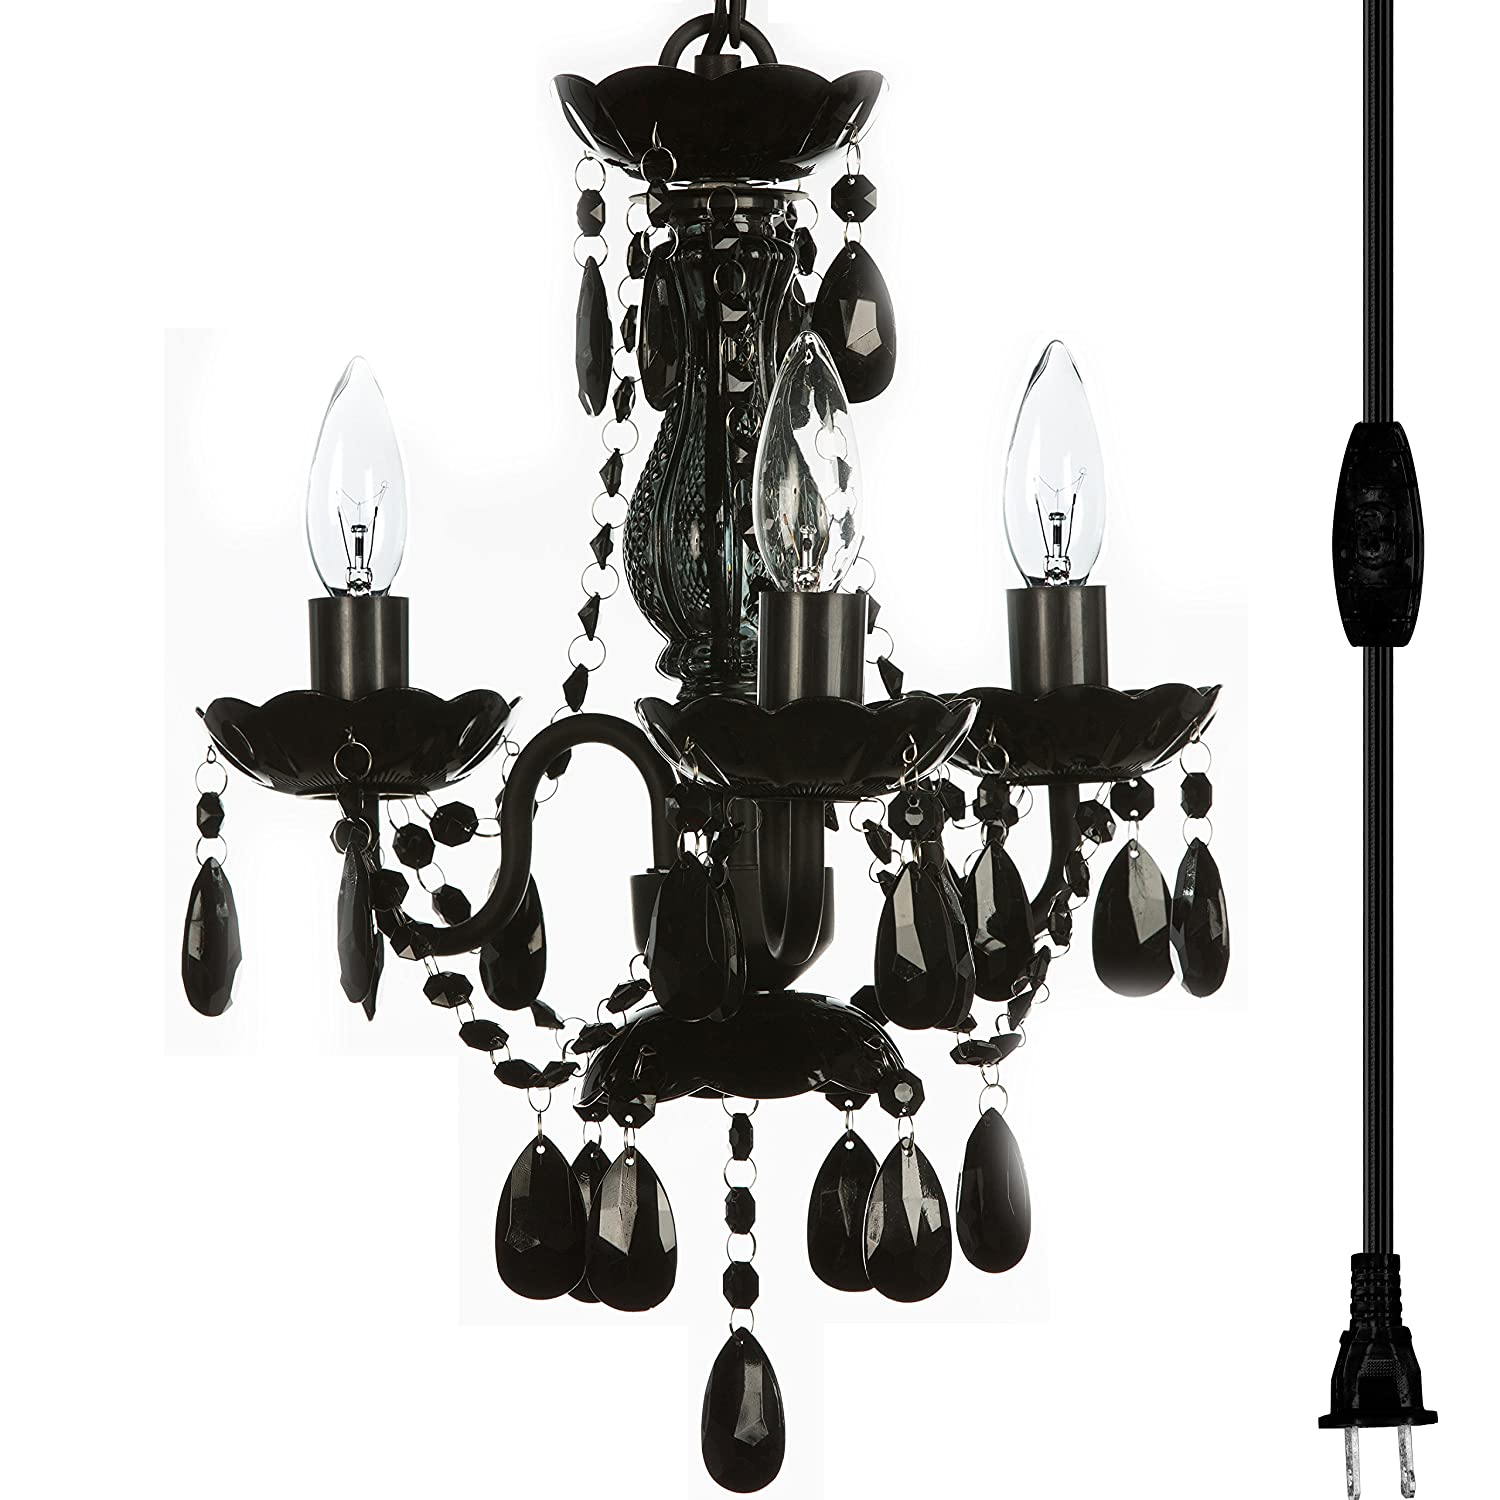 The original gypsy color 3 light mini plug in black chandelier for h17 w12 black metal frame with black acrylic crystals